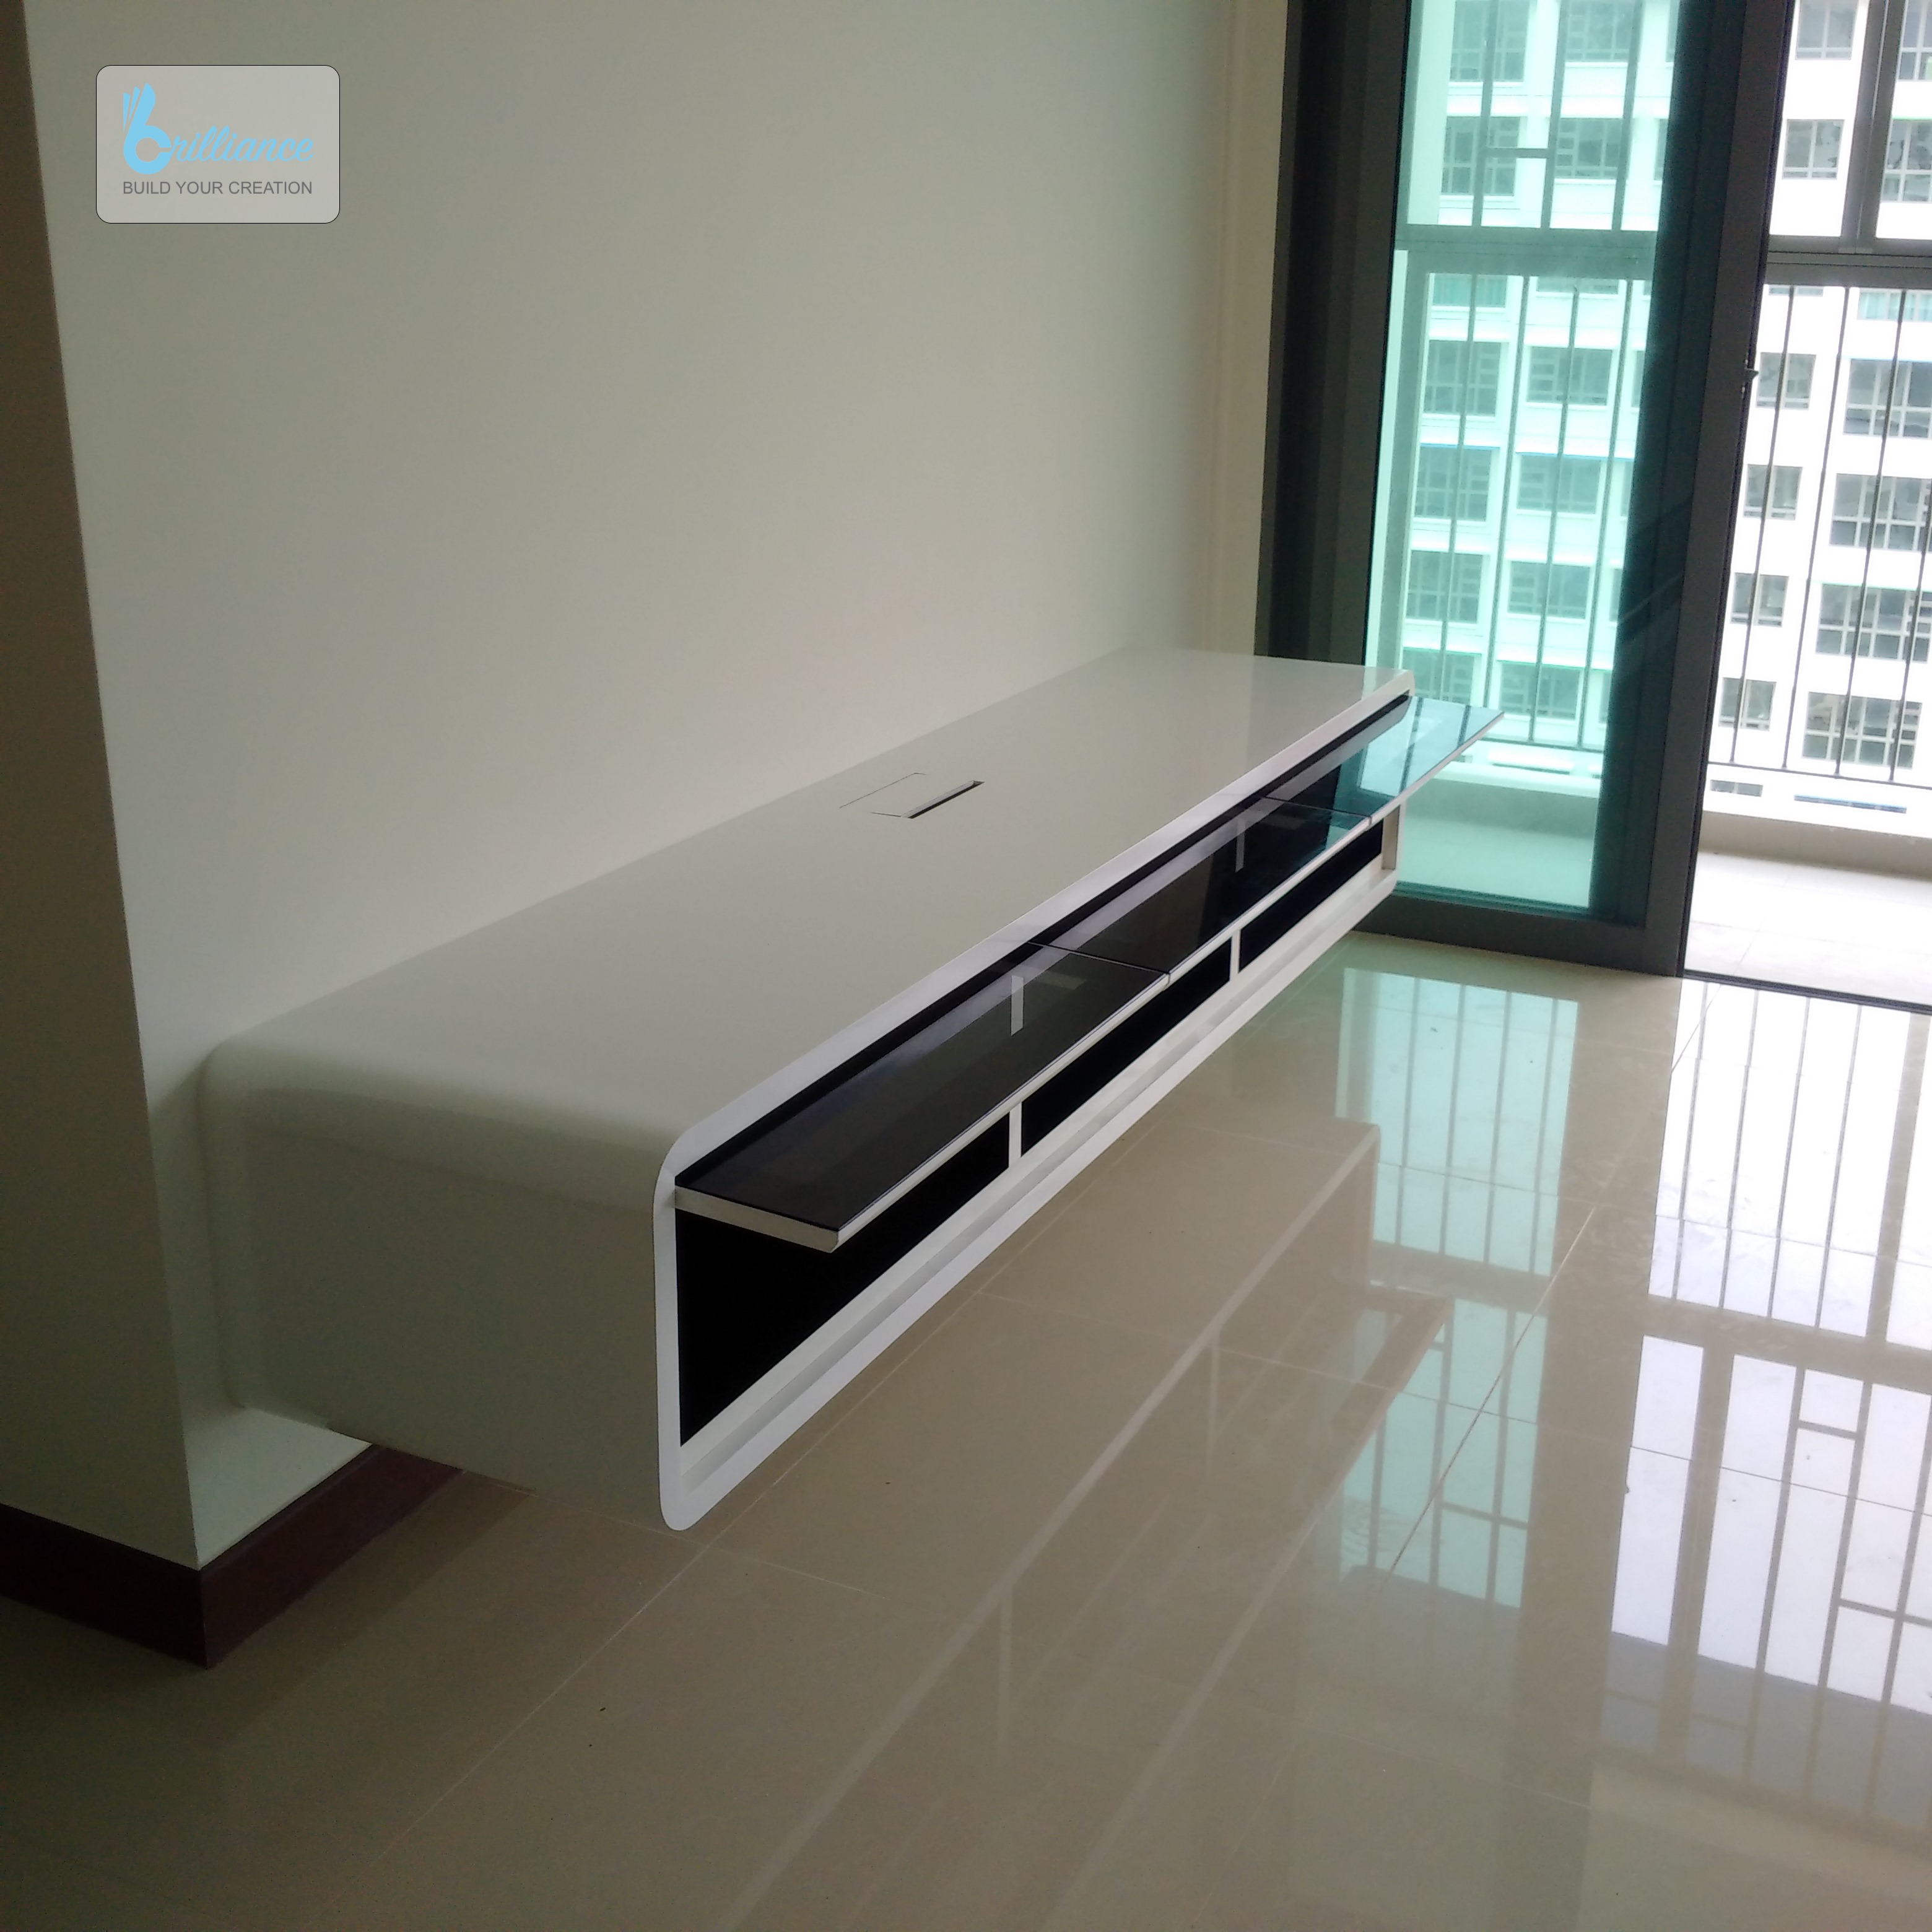 BTO Renovation - Punggol Drive - Brilliance Renovation - TV console view